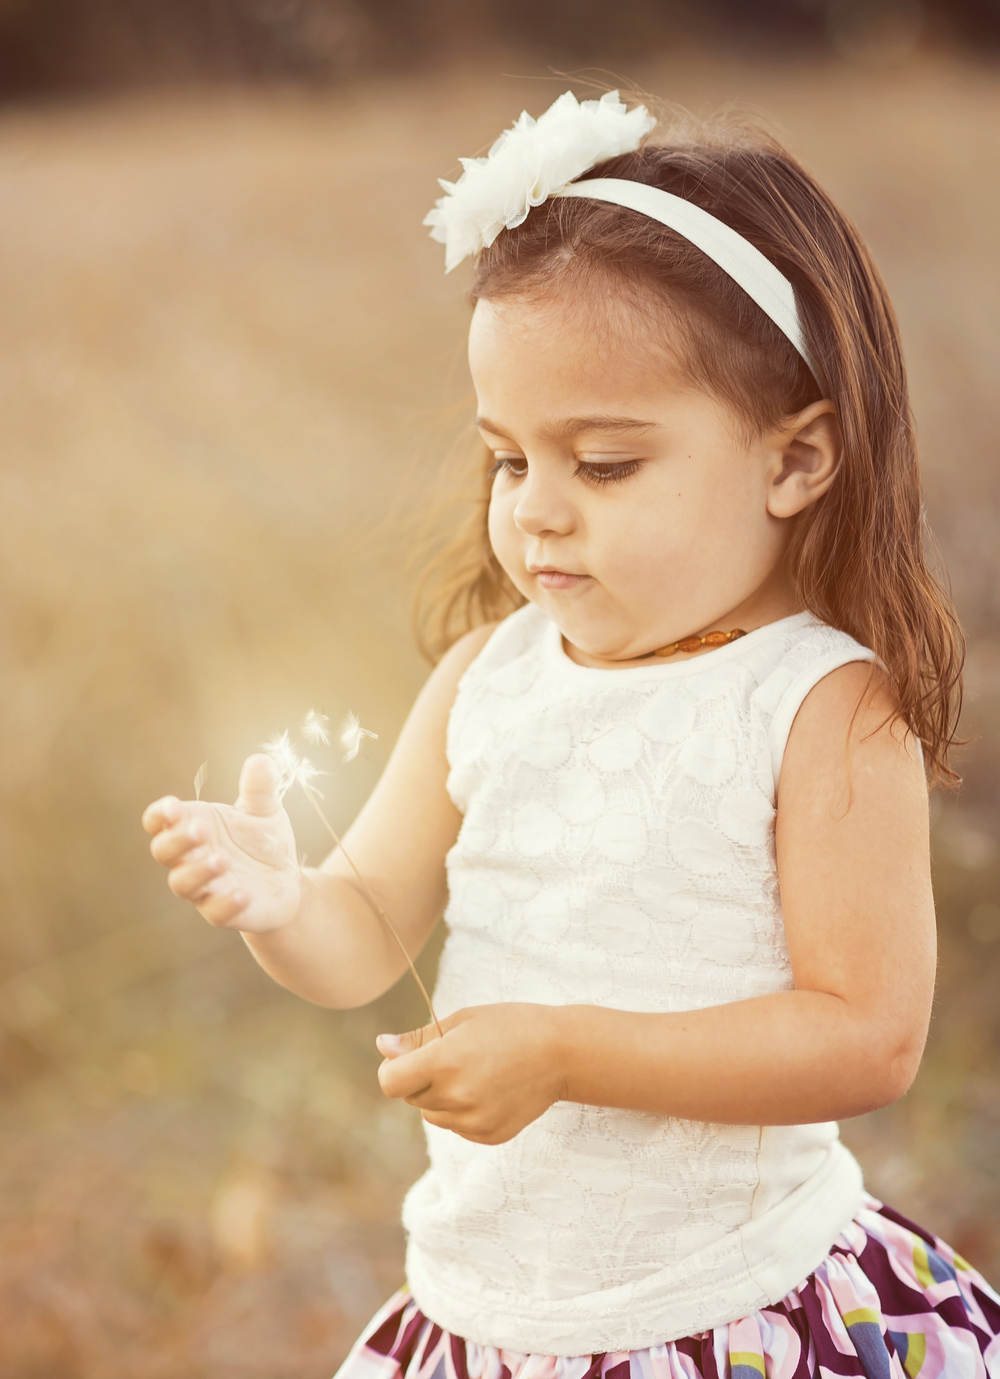 Magic-Wishes-Girl-Dandelion-Thistle-Golden-Grass-Field-Beauty-Nature-Bokeh-Innocence-Light-Love-Exploring-Learning-Mesmerized-Awe-Inspiring